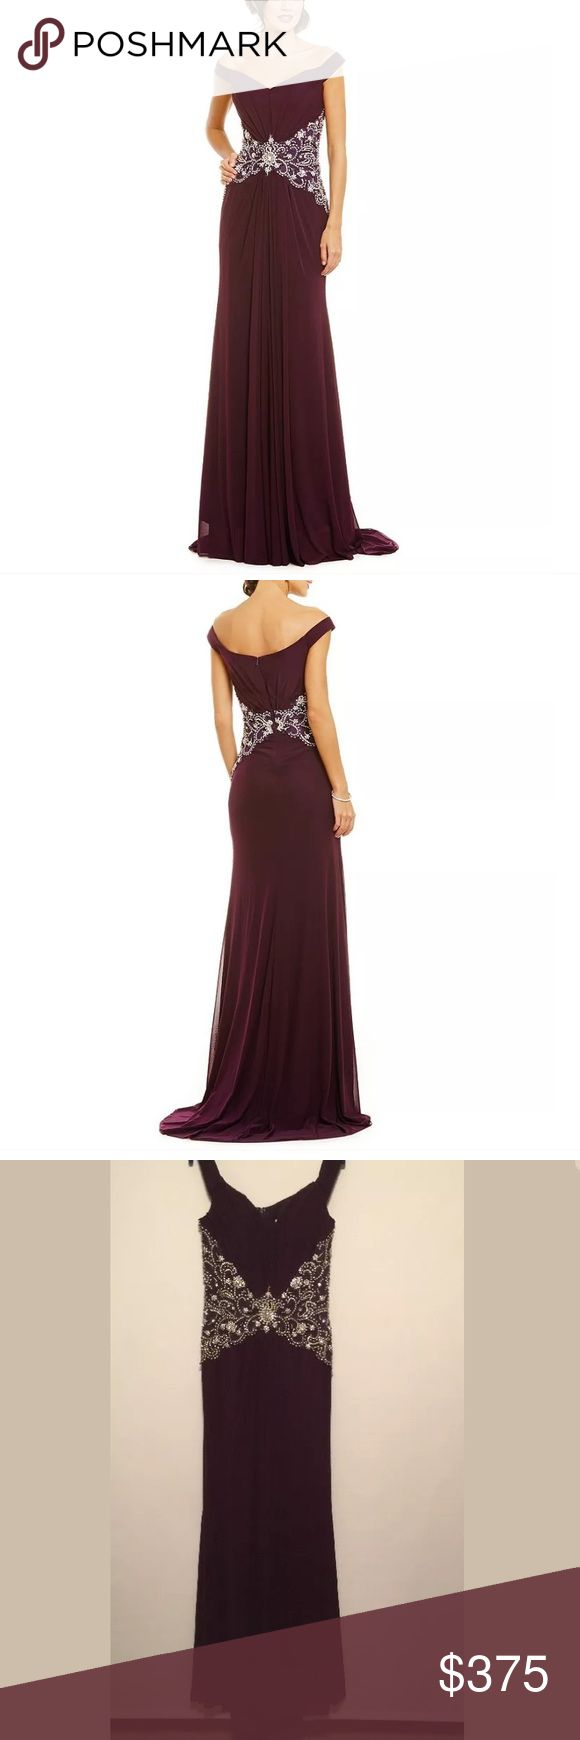 LASTING MOMENTS OFF-THE-SHOULDER BEADED GOWN Portrait, off-the-shoulder neckline Sleeveless Draped pleats on bodice Gathering at center front Crystal beading at waist Center back zipper closure Polyester/jersey chiffon Spot clean Lasting Moments  Dresses Prom